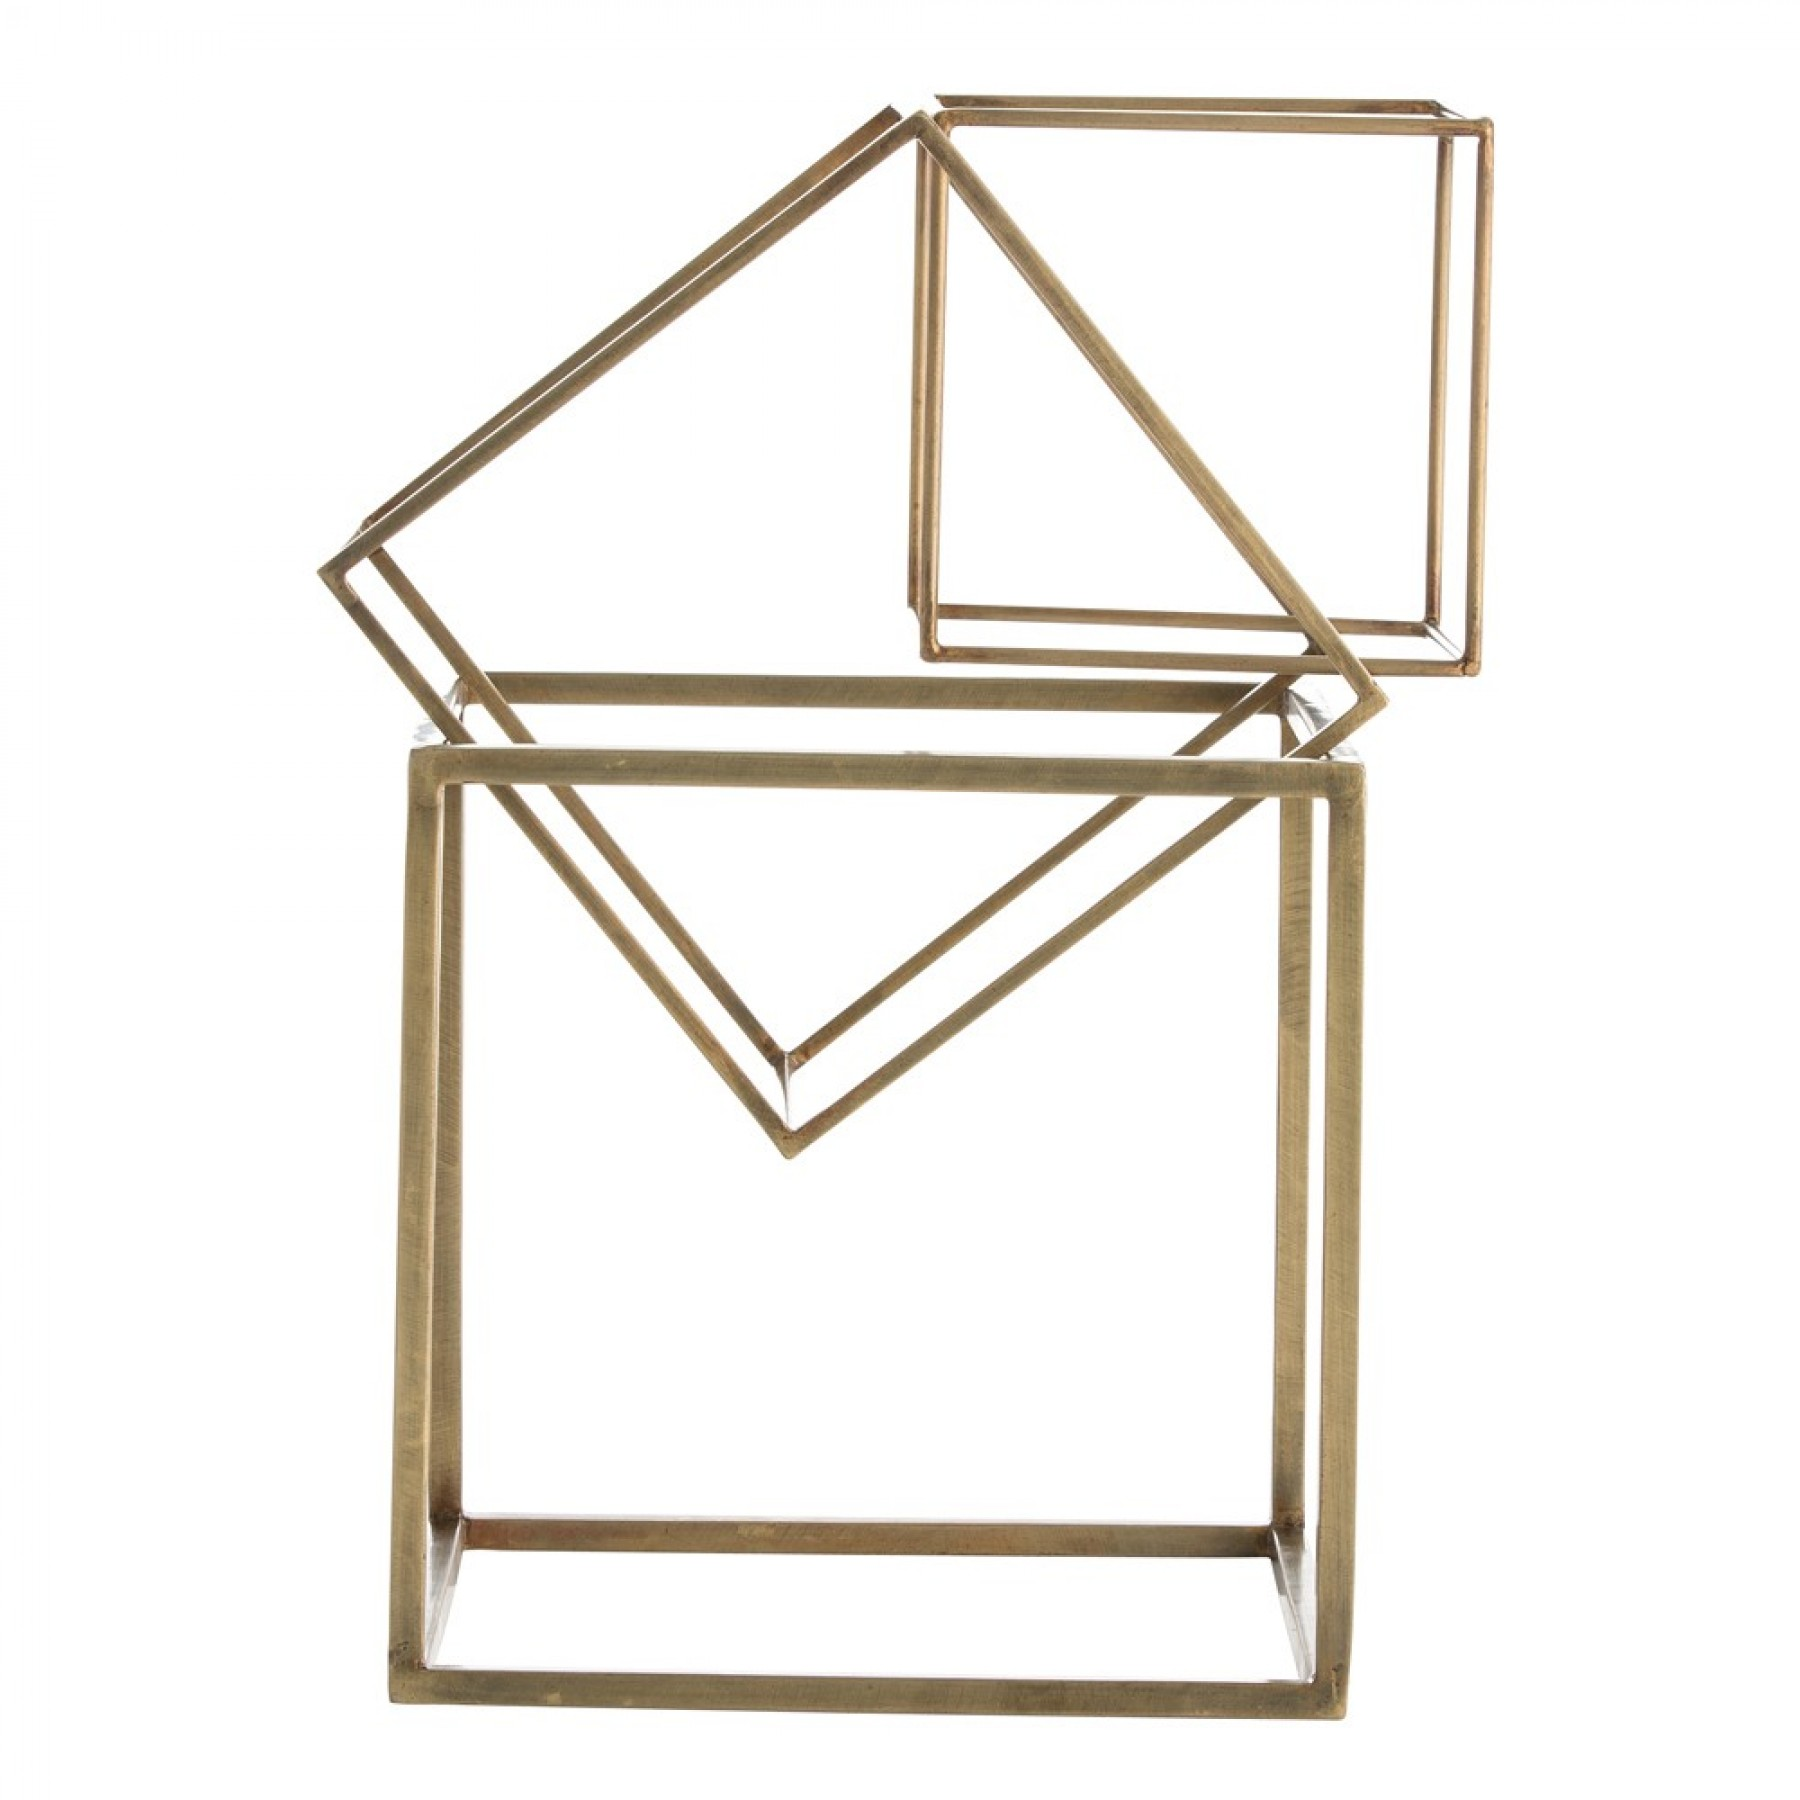 The 'McCoy Sculptures' come as a set of three antique brass cubes that can be re-arranged at will. £149.58 Arteriors Home